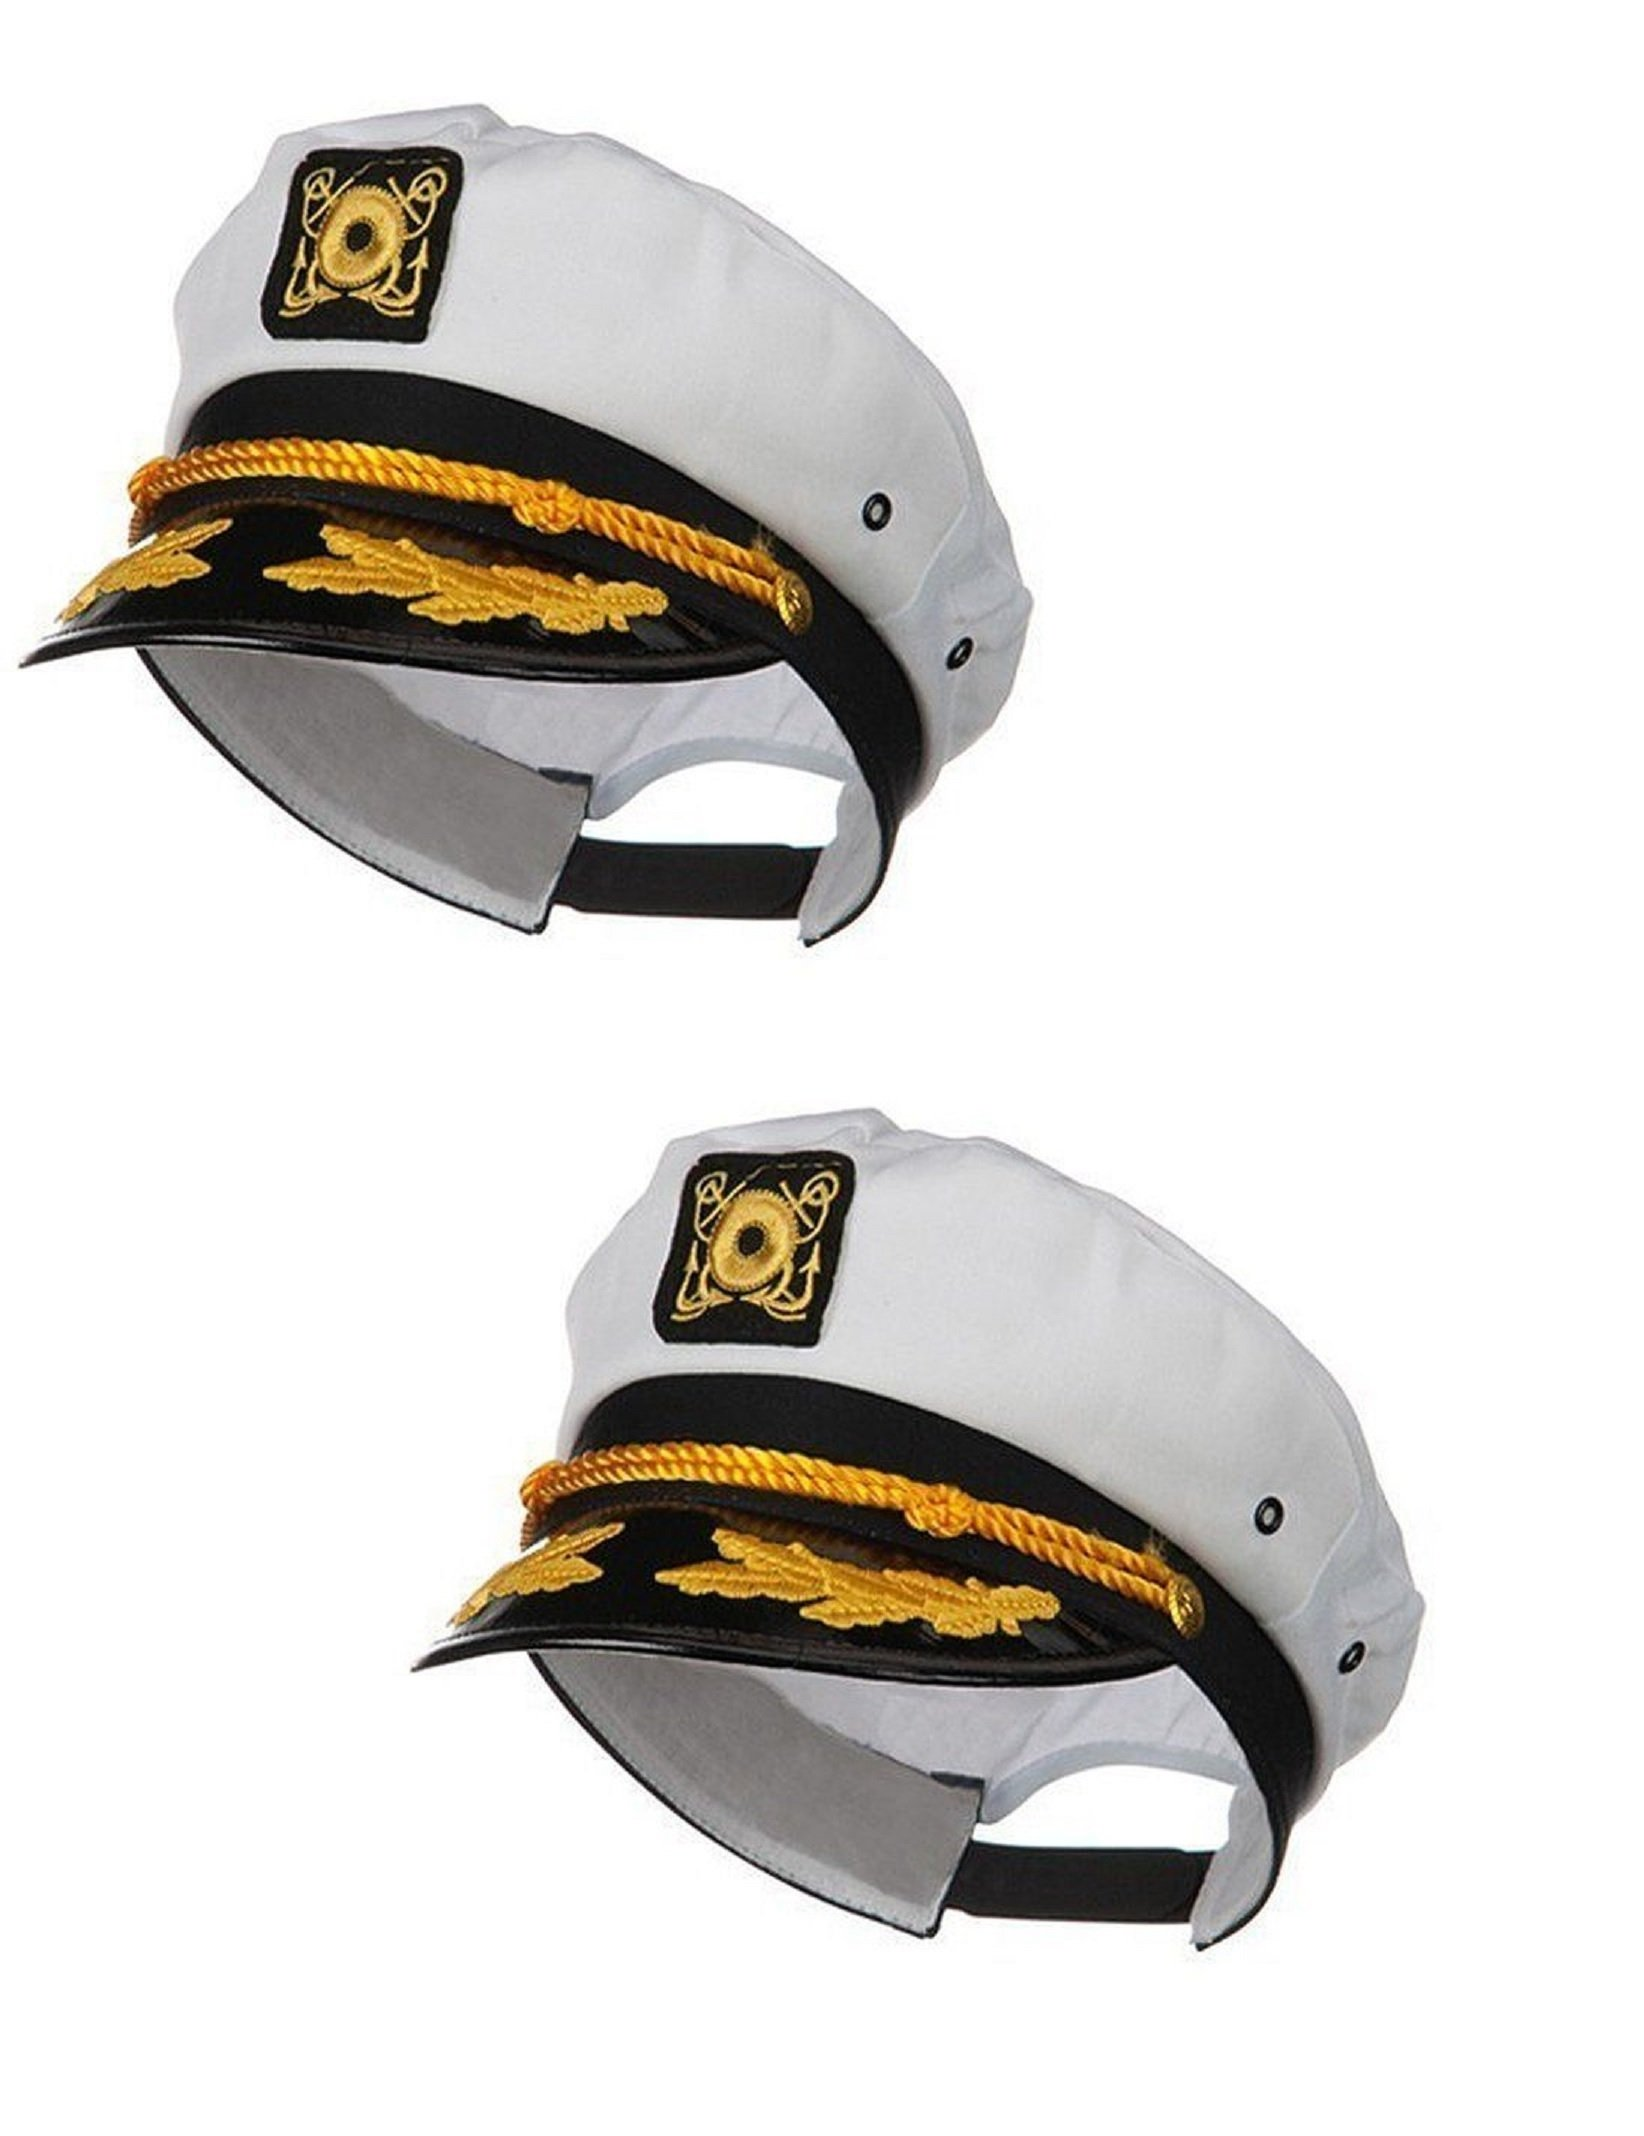 Sailor Ship Yacht Boat Captain Hat Navy Marines Admiral White Gold Cap 2 Pack